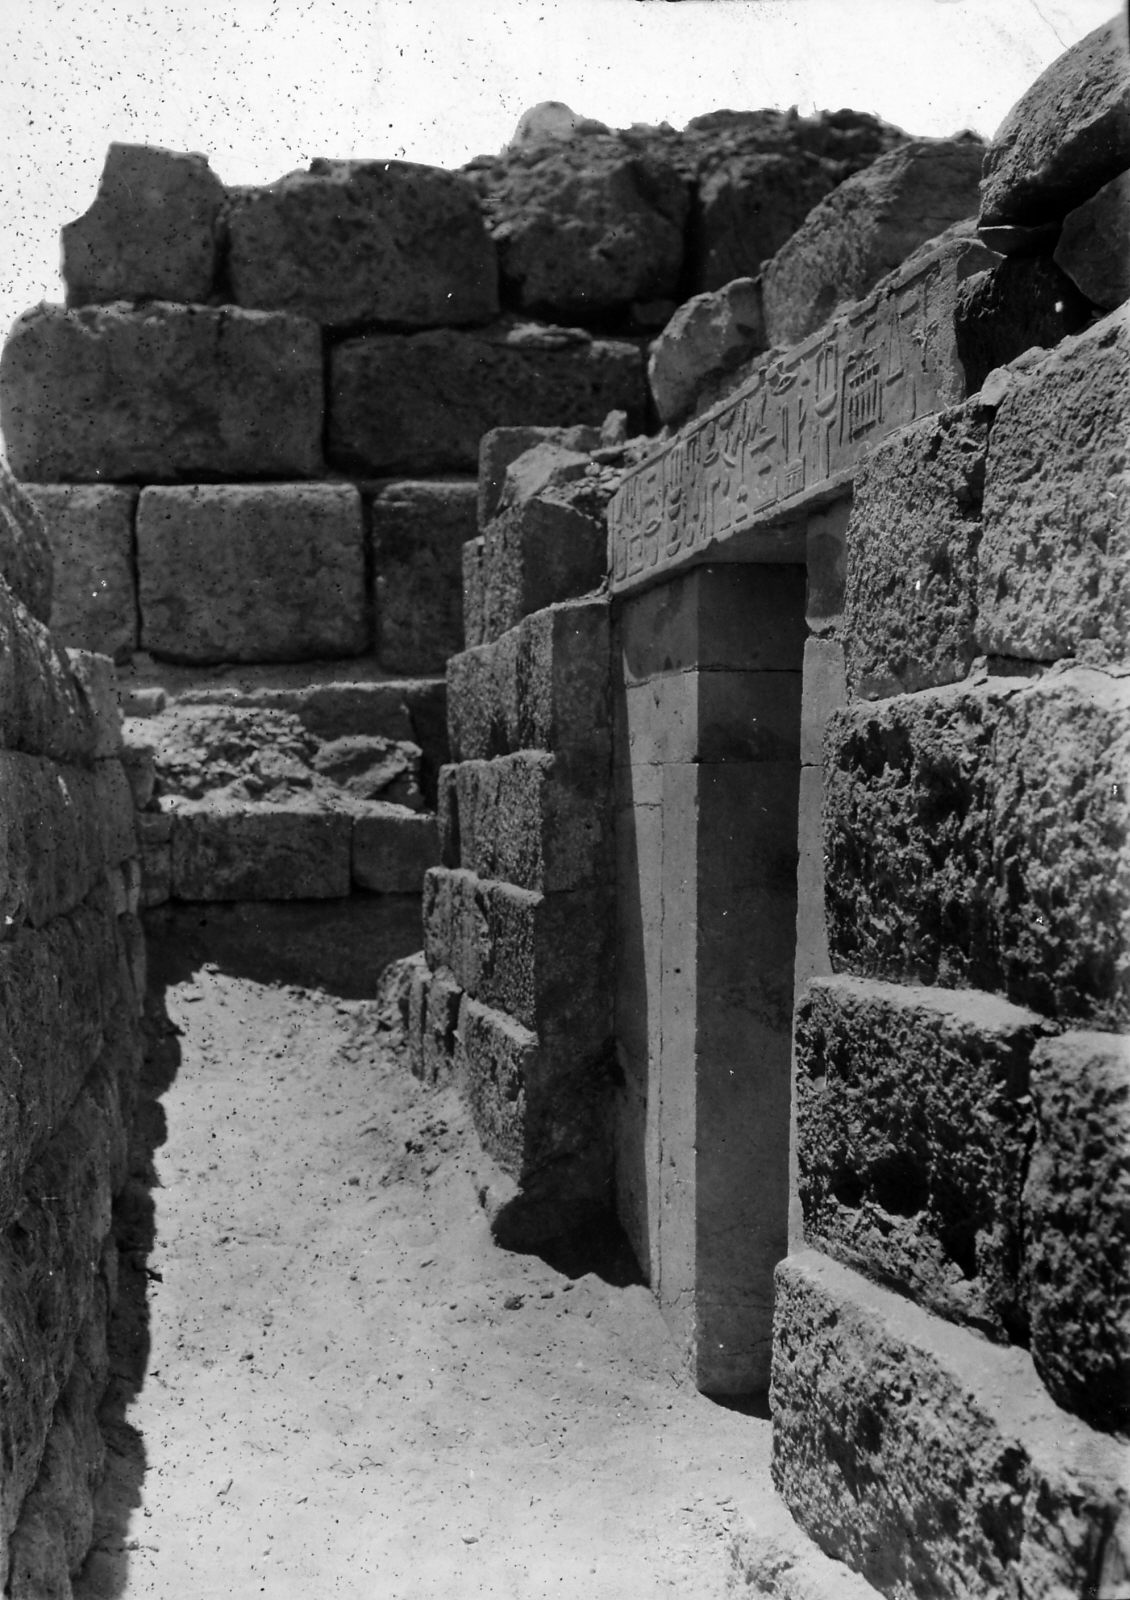 D 117, eastern face, chapel entrance, lintel inscribed for Wehemka (part of Hildesheim acc. no. 2970), looking south-southwest. Photo ID KHM_o_neg_nr_0640, photo and description courtesy of the Giza Archives maintained by Harvard University and the Museum of Fine Arts Boston, online at Digital Giza.